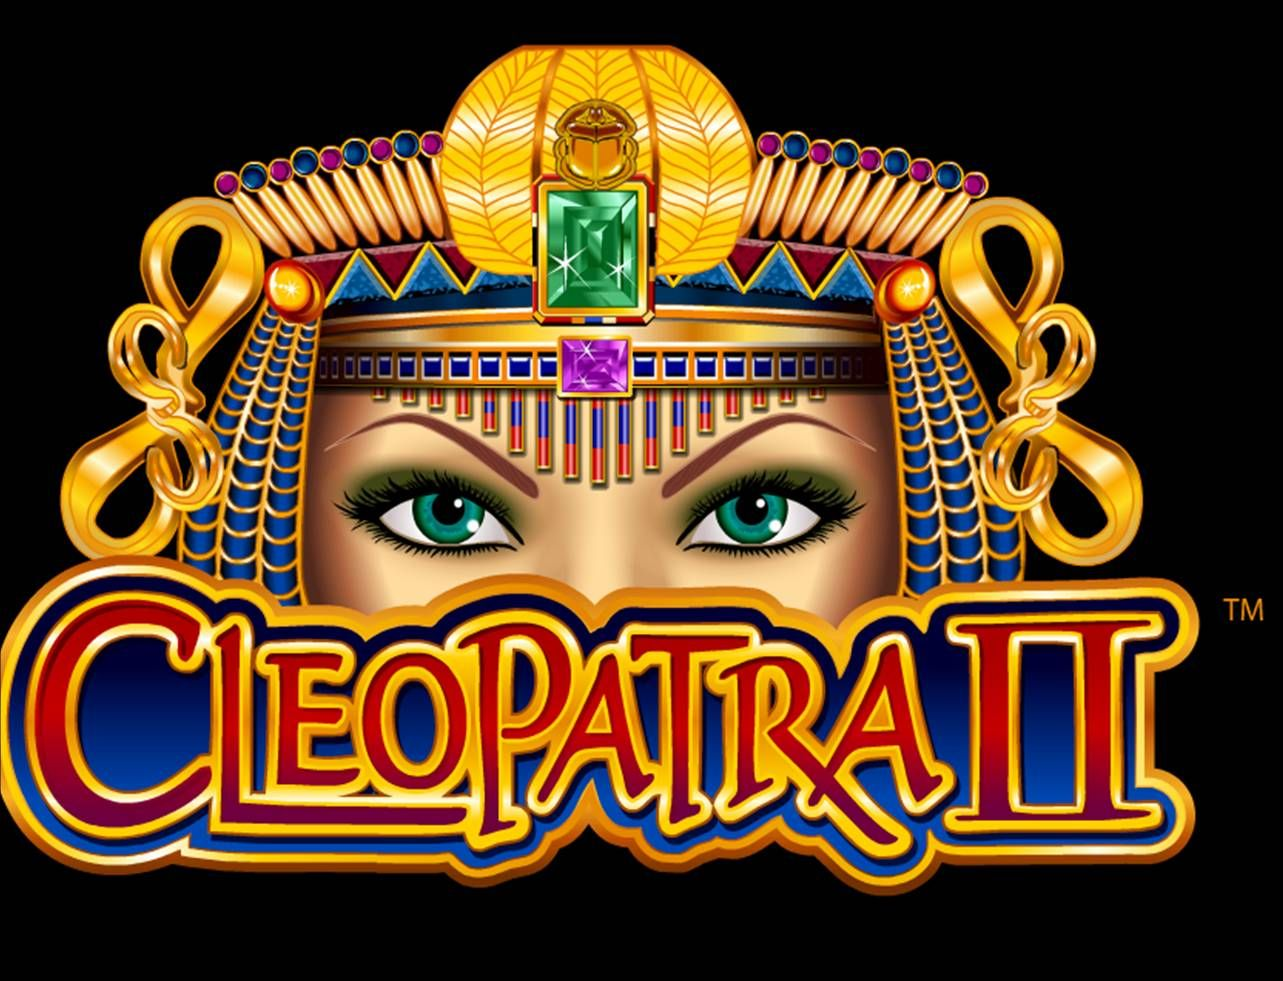 My favourite slot game of all time! Found a great site to